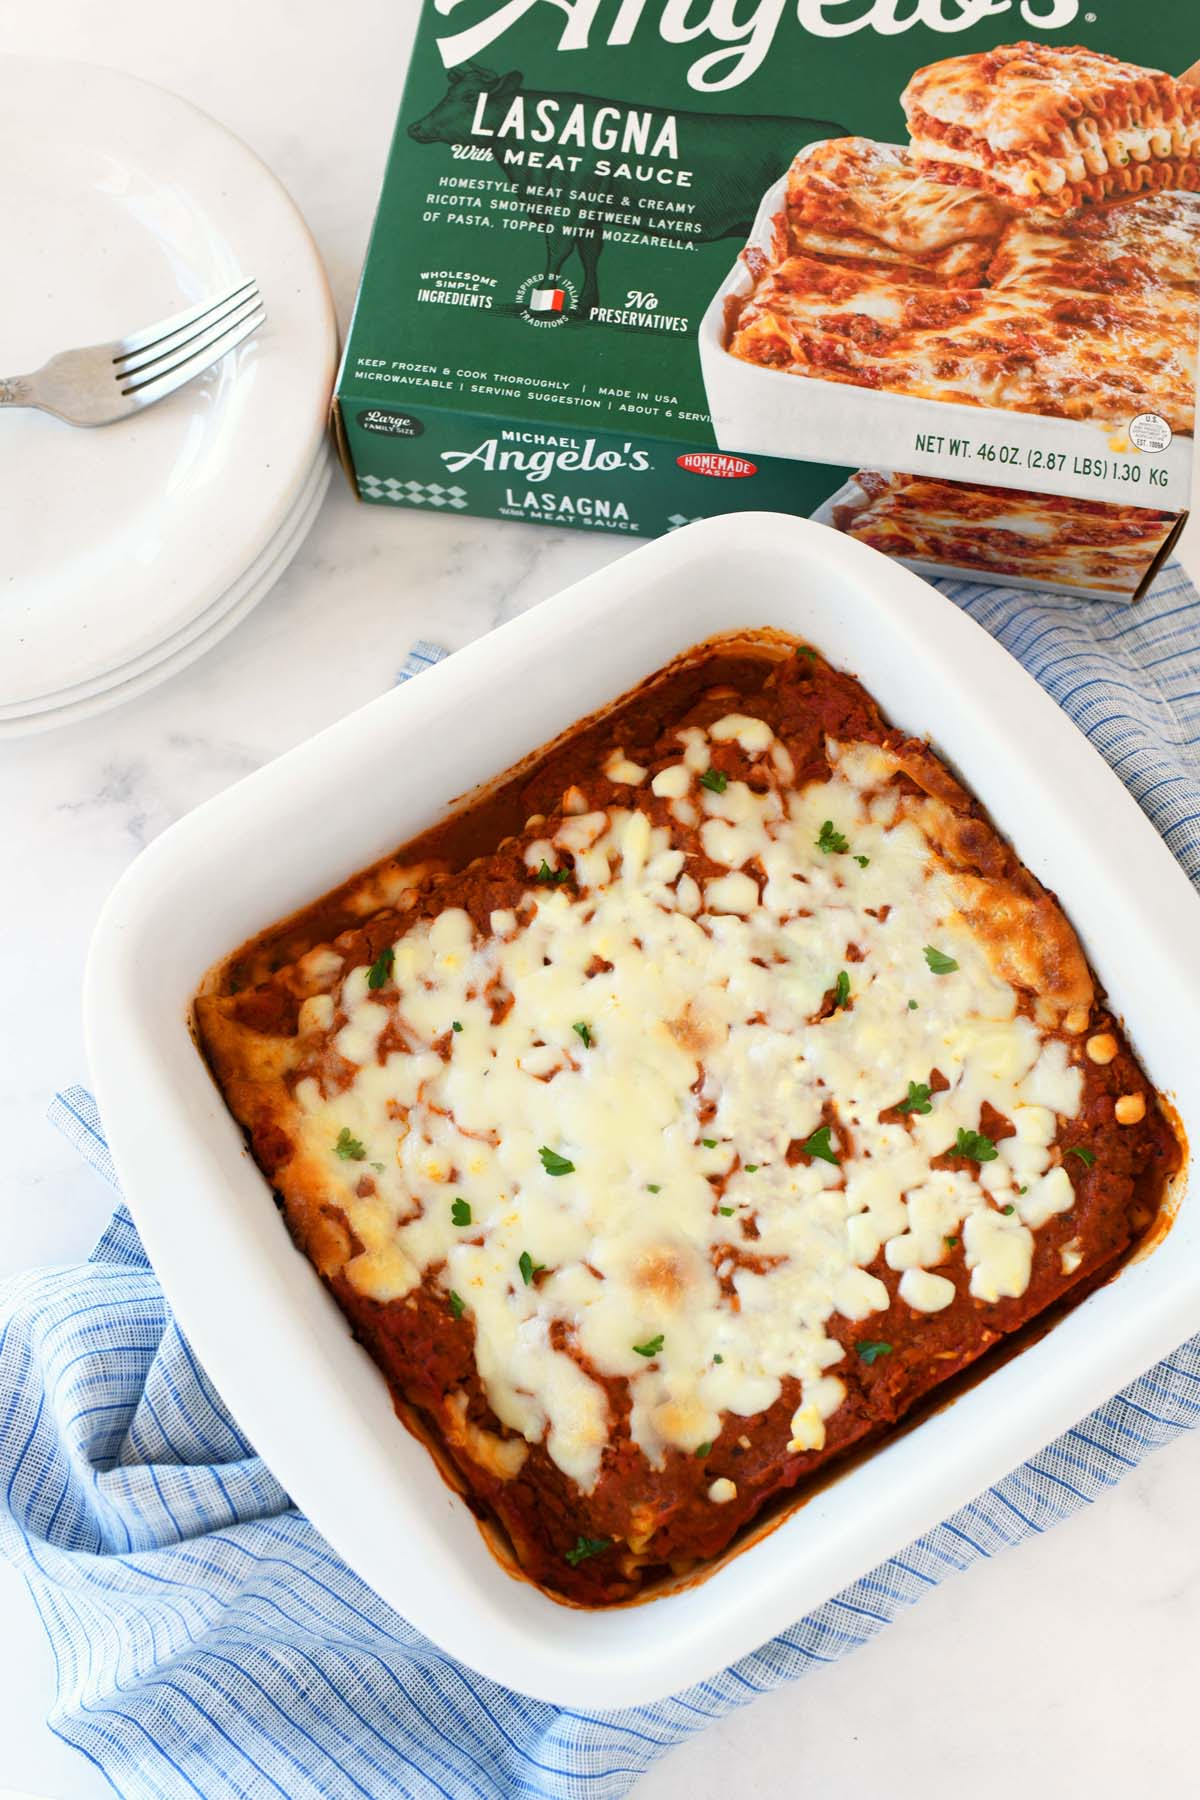 Michael Angelos Meat Lasagna baked in a small white, rectangular dish.